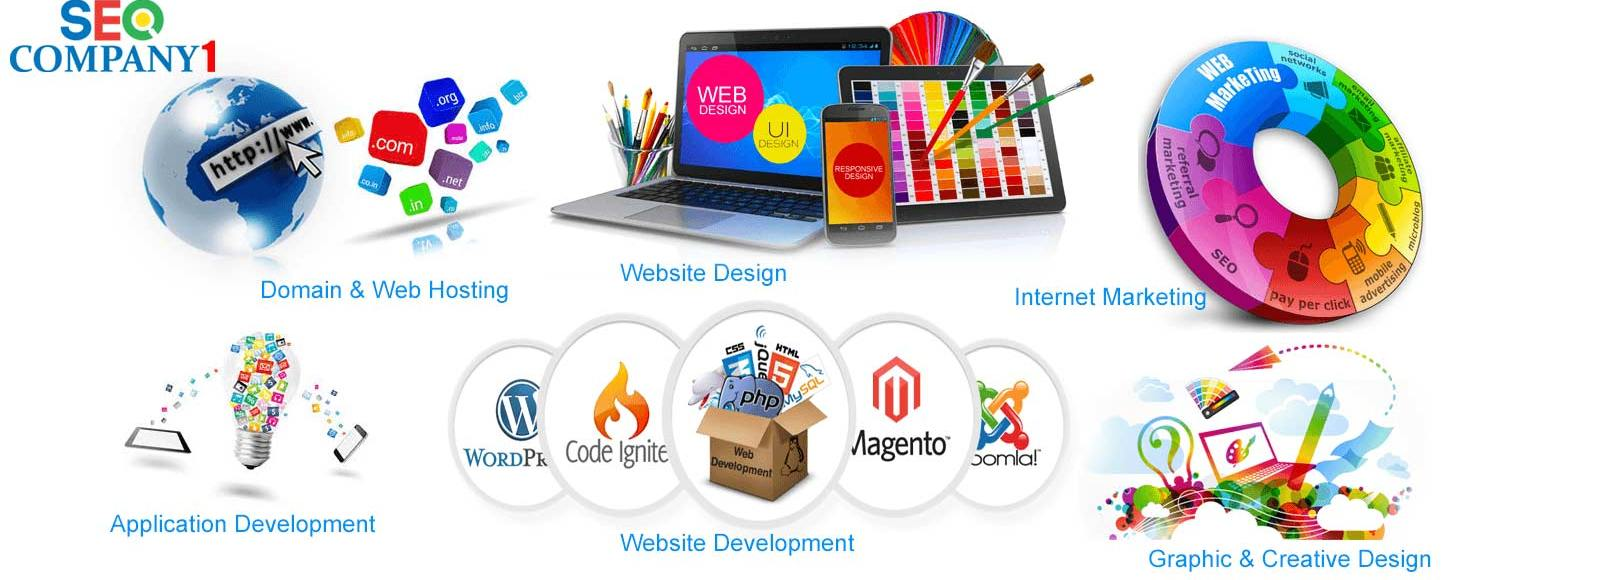 SEO Company Delhi #1 Digital Marketing Agency Noida, Gurgaon India